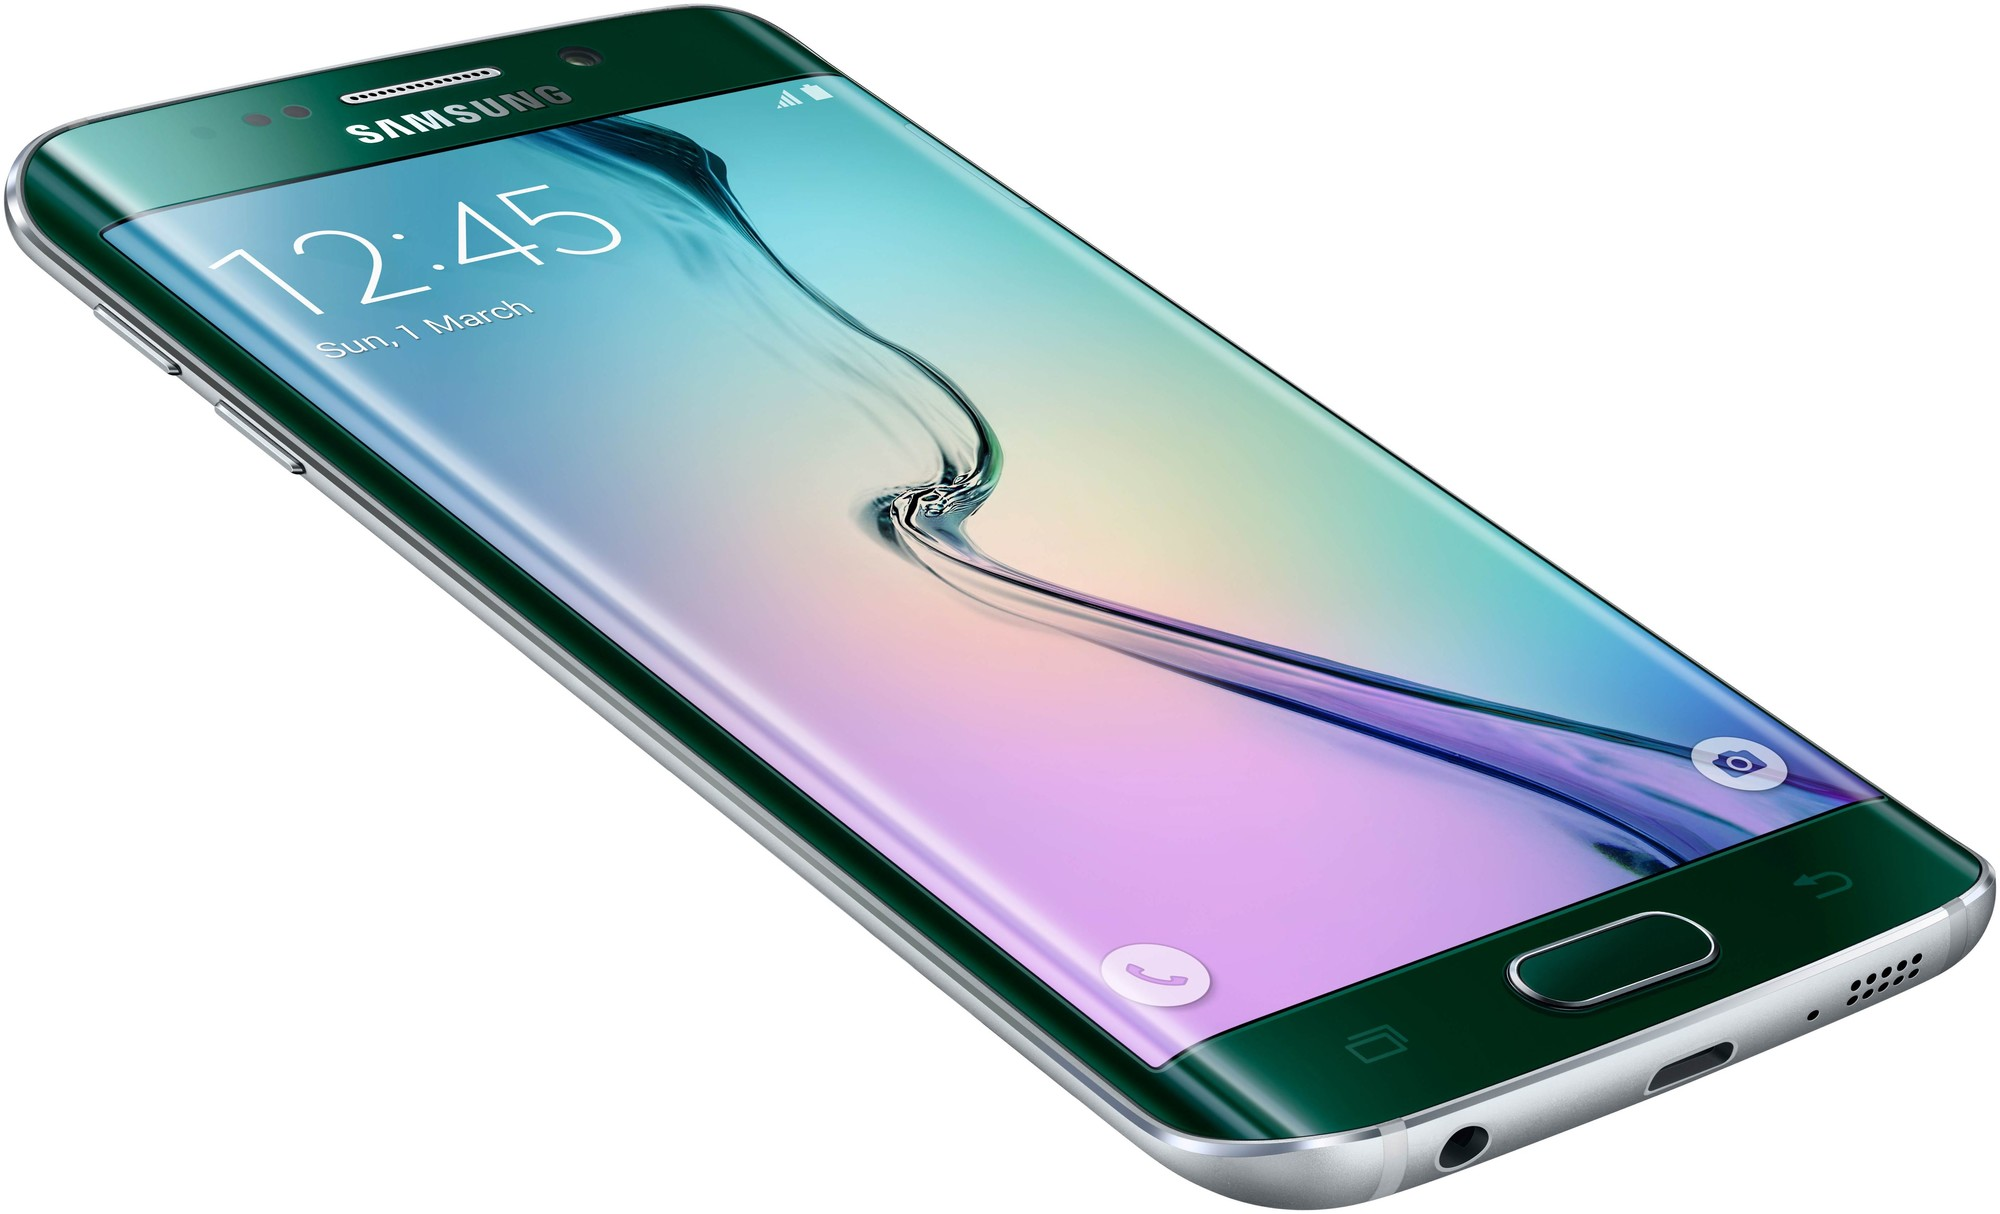 samsung galaxy s6 edge sm g925f 64gb specs and price. Black Bedroom Furniture Sets. Home Design Ideas